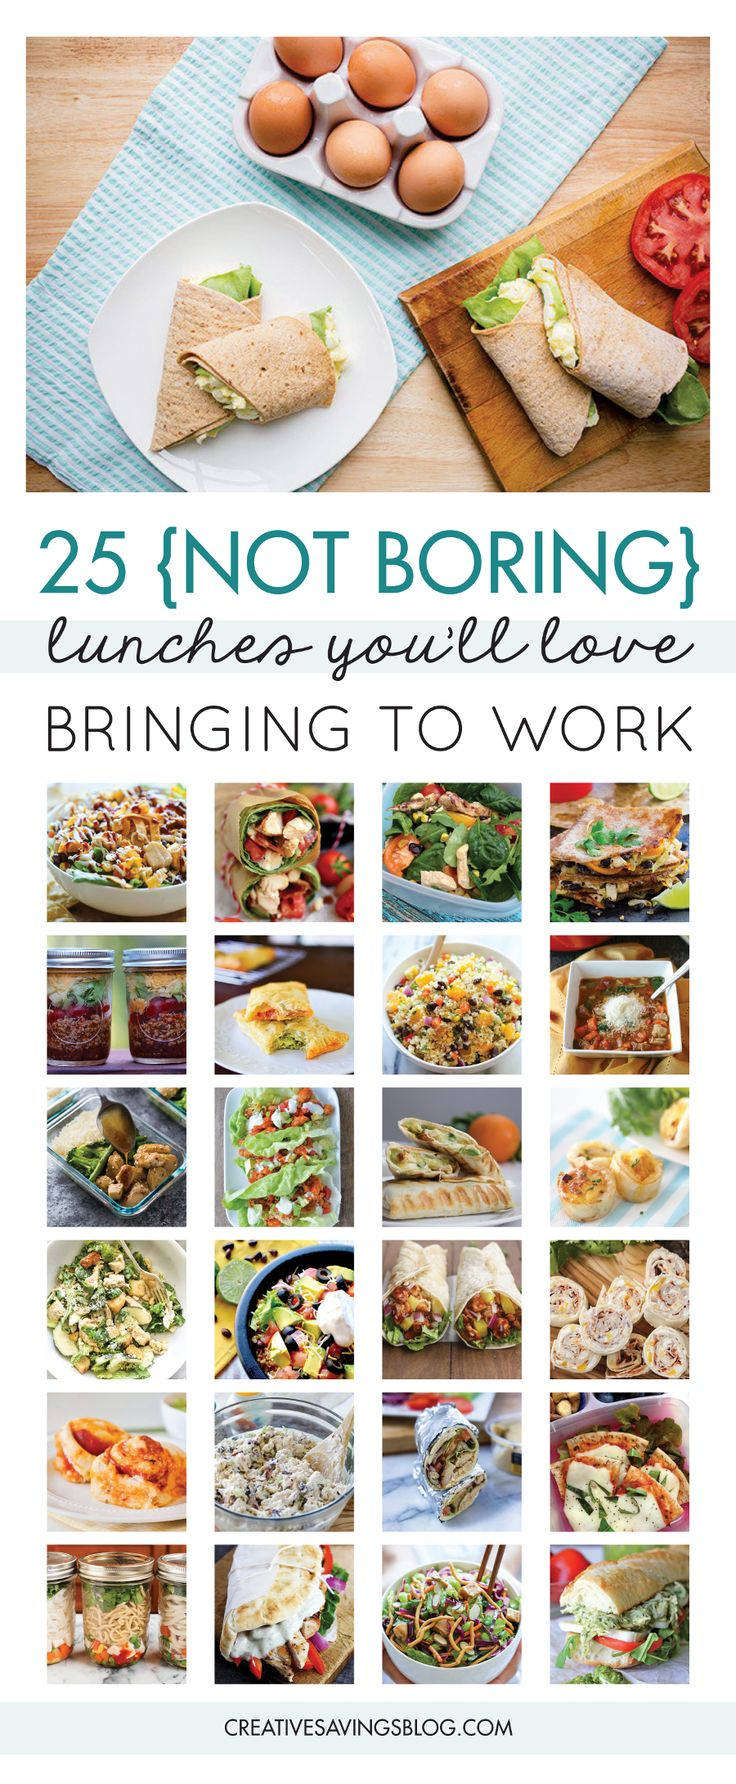 Pack your lunch. It's such a simple statement, but did you know this simple act can save you $500 or more each year?! So what's holding you back? Do you need packed lunch ideas...or more specifically work lunch ideas? These 7 creative ways to avoid the eating out trap at work, will not only save money, they'll also help jumpstart a healthy lifestyle. Let's face it—healthy work lunches make you feel 100 times better than greasy fast food ever could!